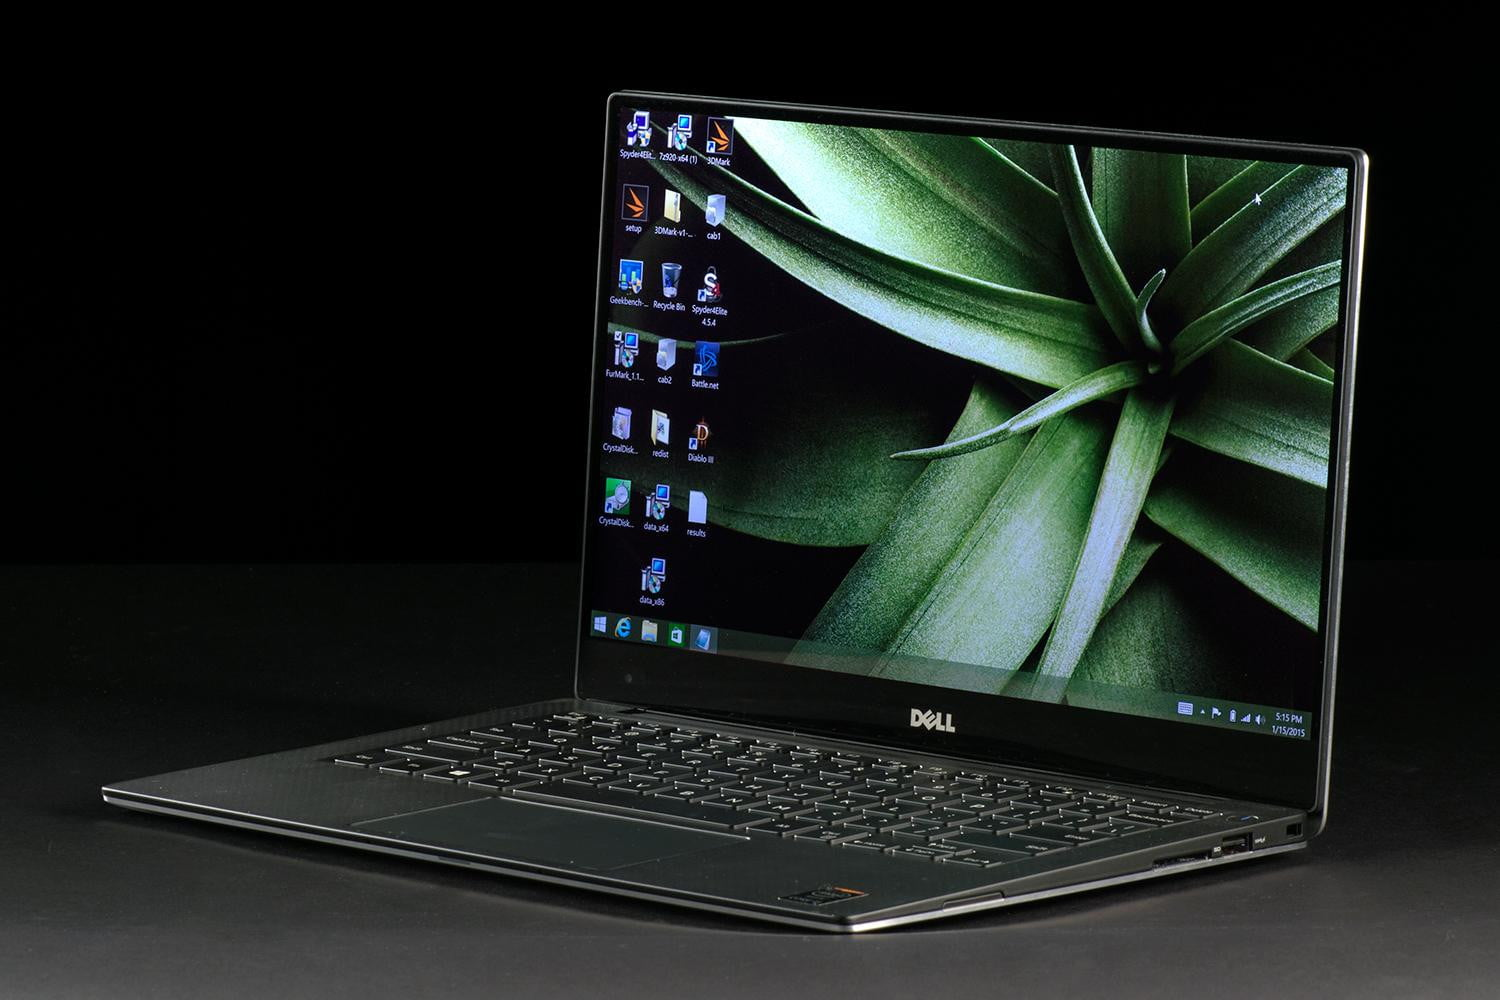 Whats the best kind of lap top i can buy for under $800?